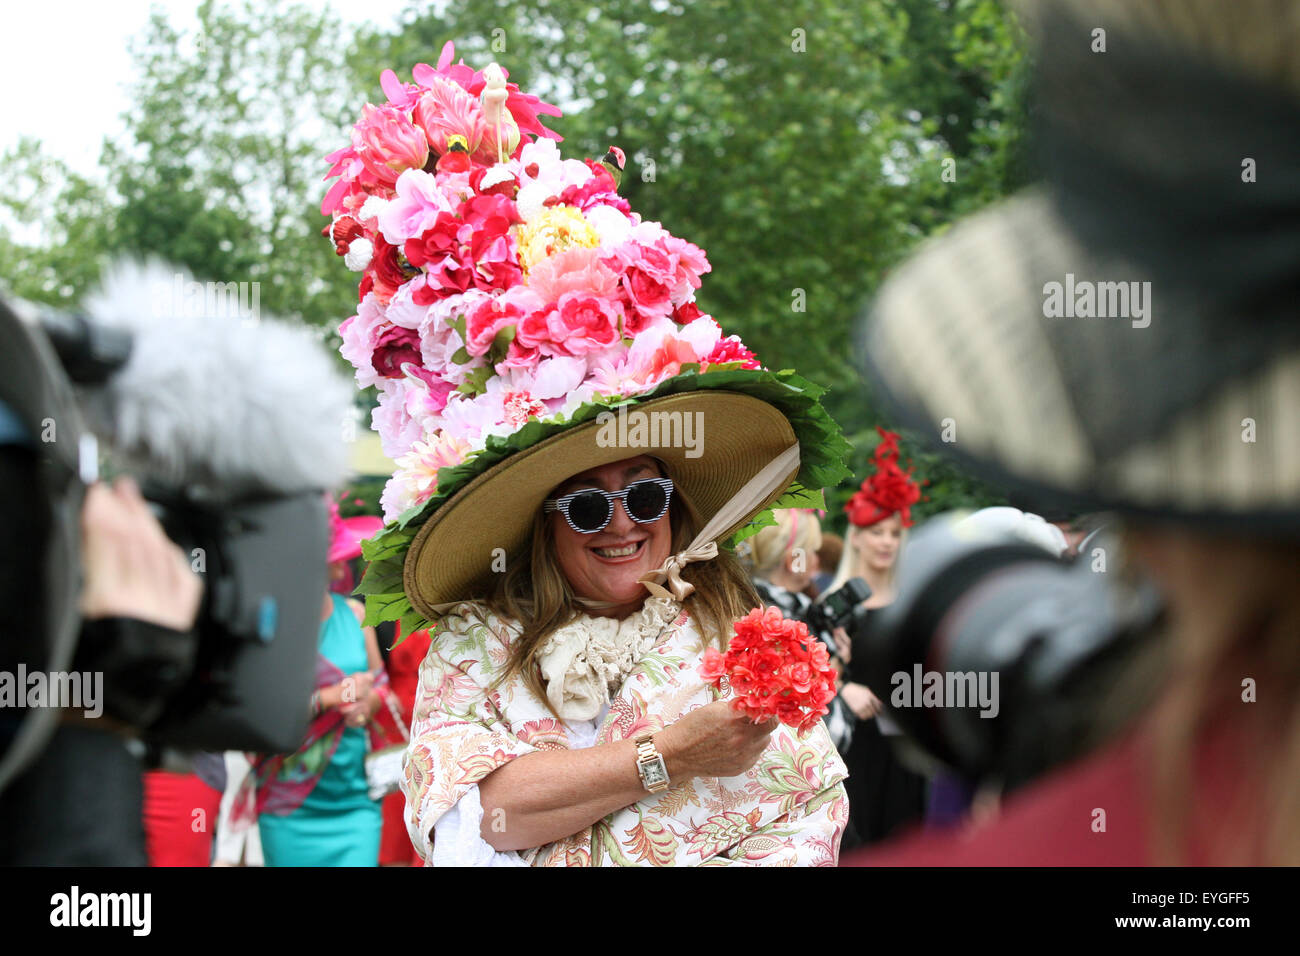 Ascot, United Kingdom, quirky woman with hat at the races - Stock Image